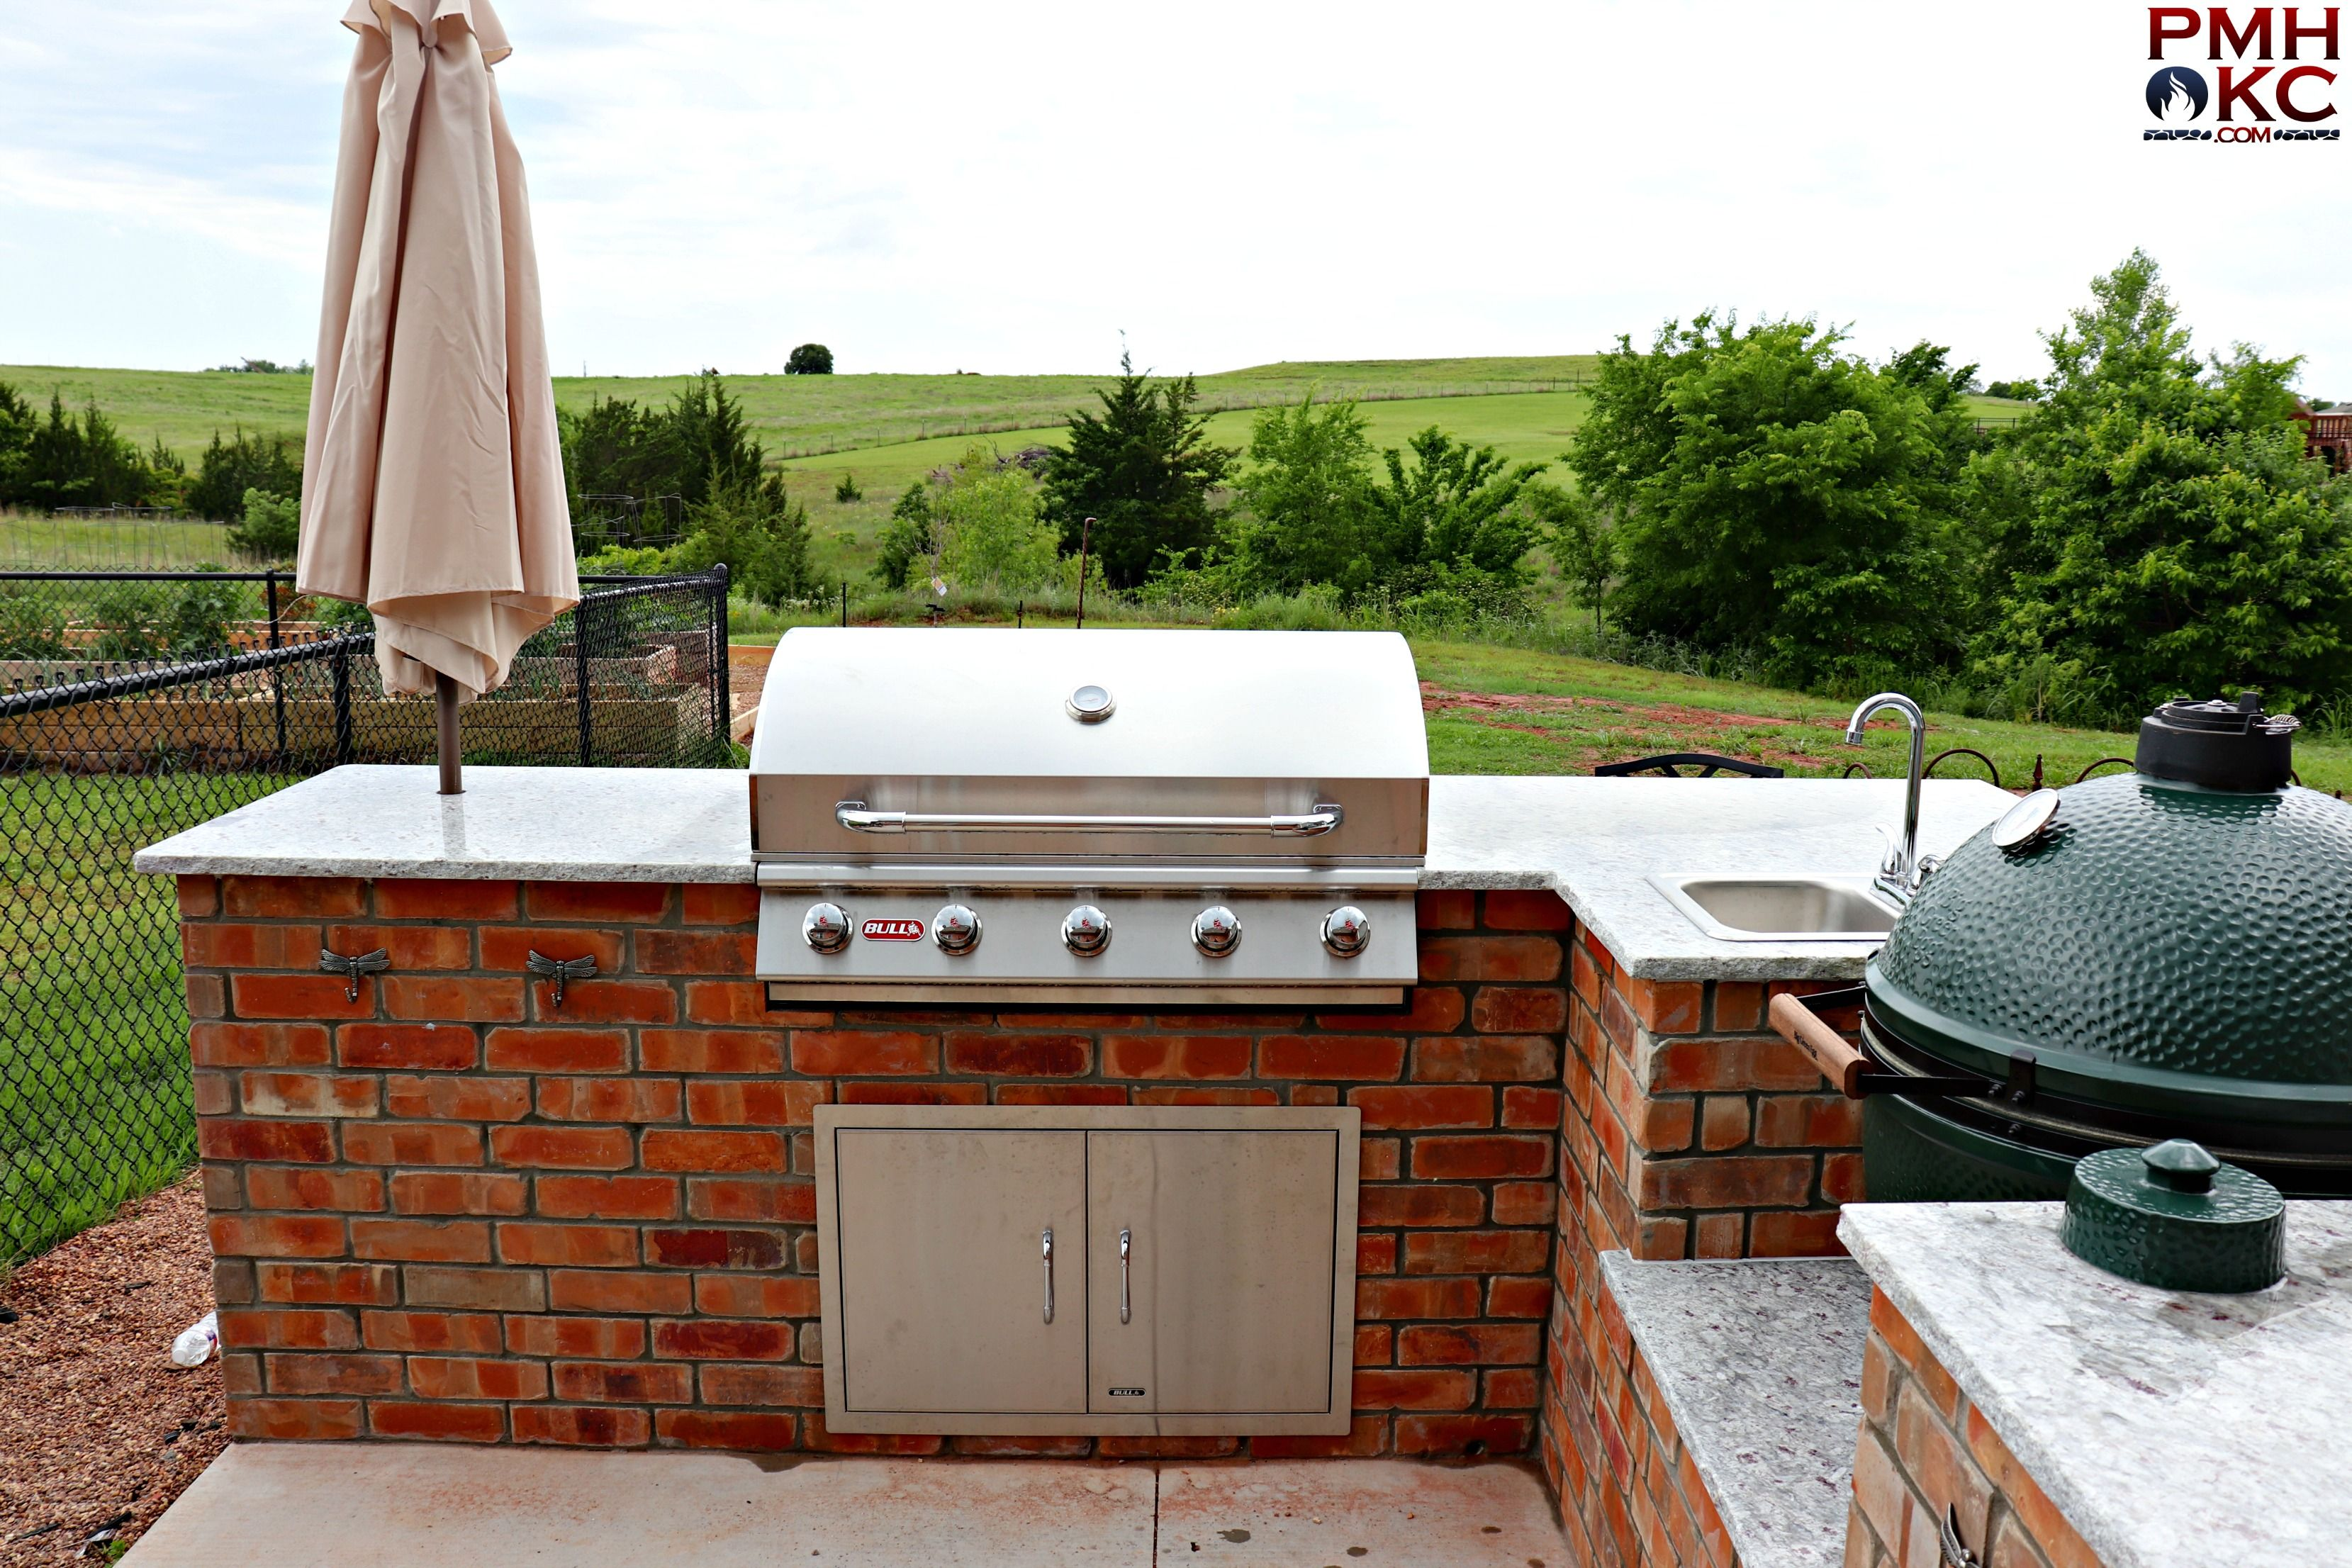 Image Detail For Outdoor Kitchen And Outdoor Shower Installs In Miami Dade Outdoor Kitchen Plans Backyard Kitchen Outdoor Kitchen